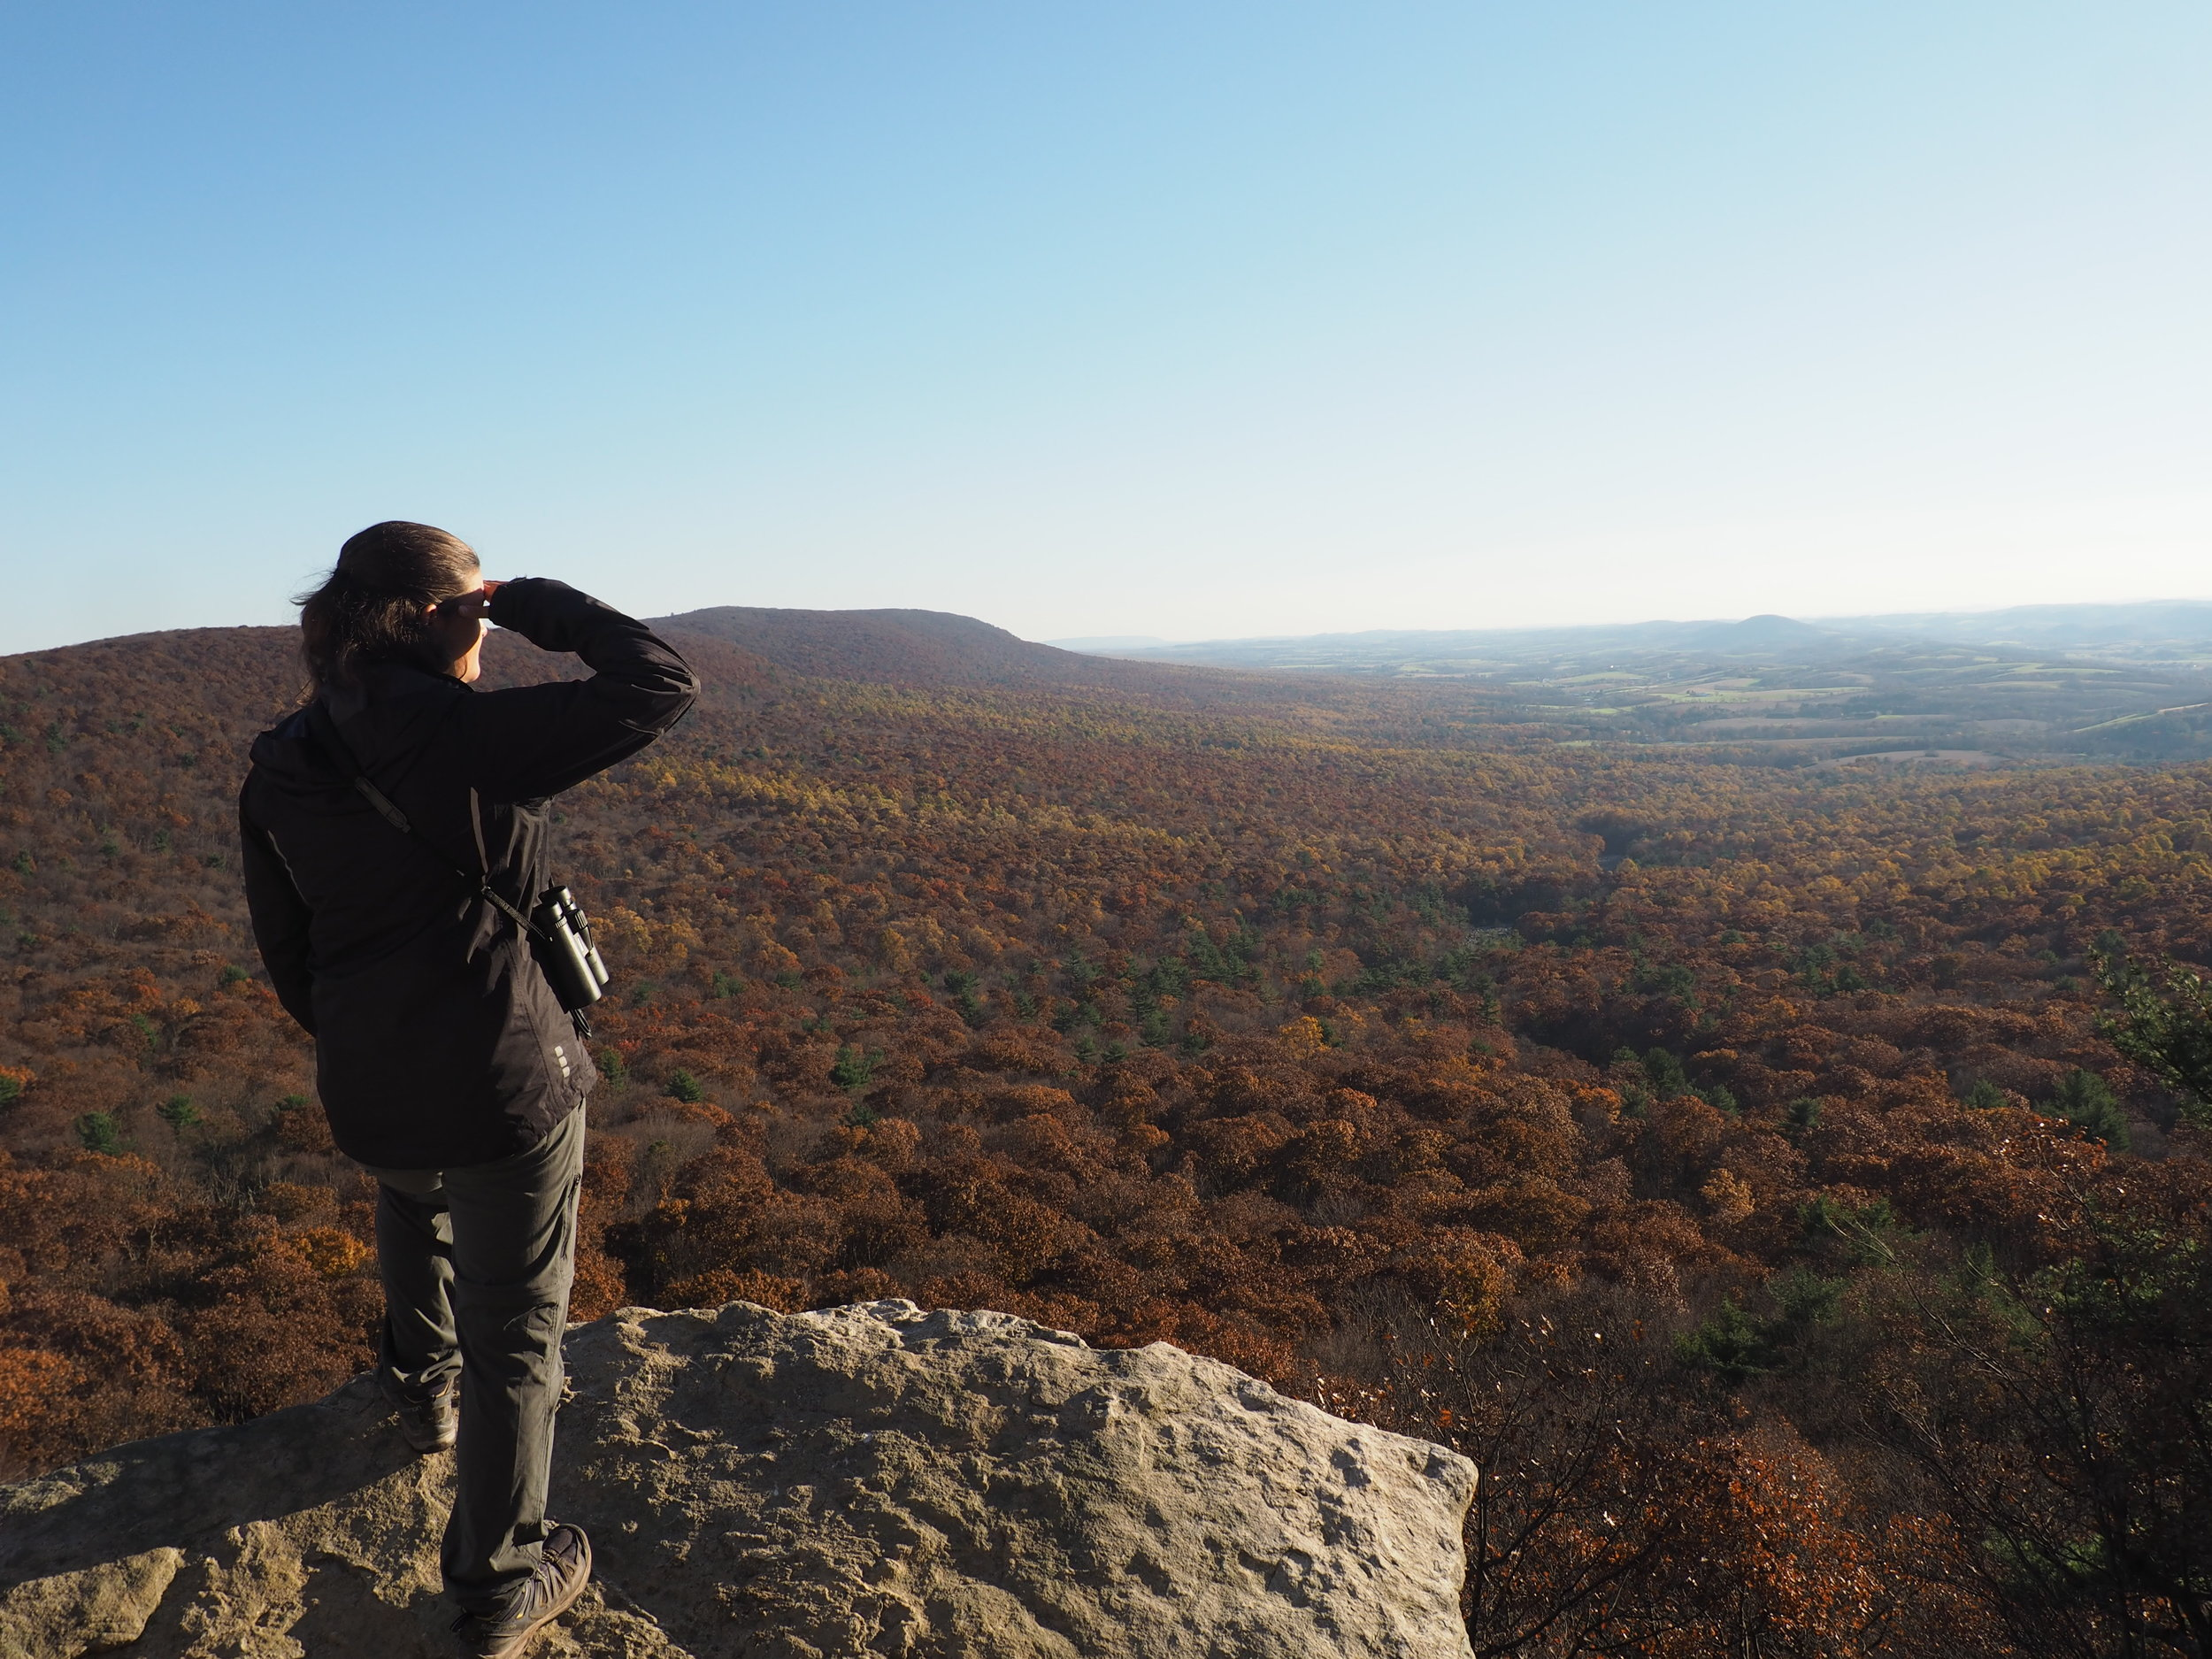 Adehl looks out at the valley from South Lookout.